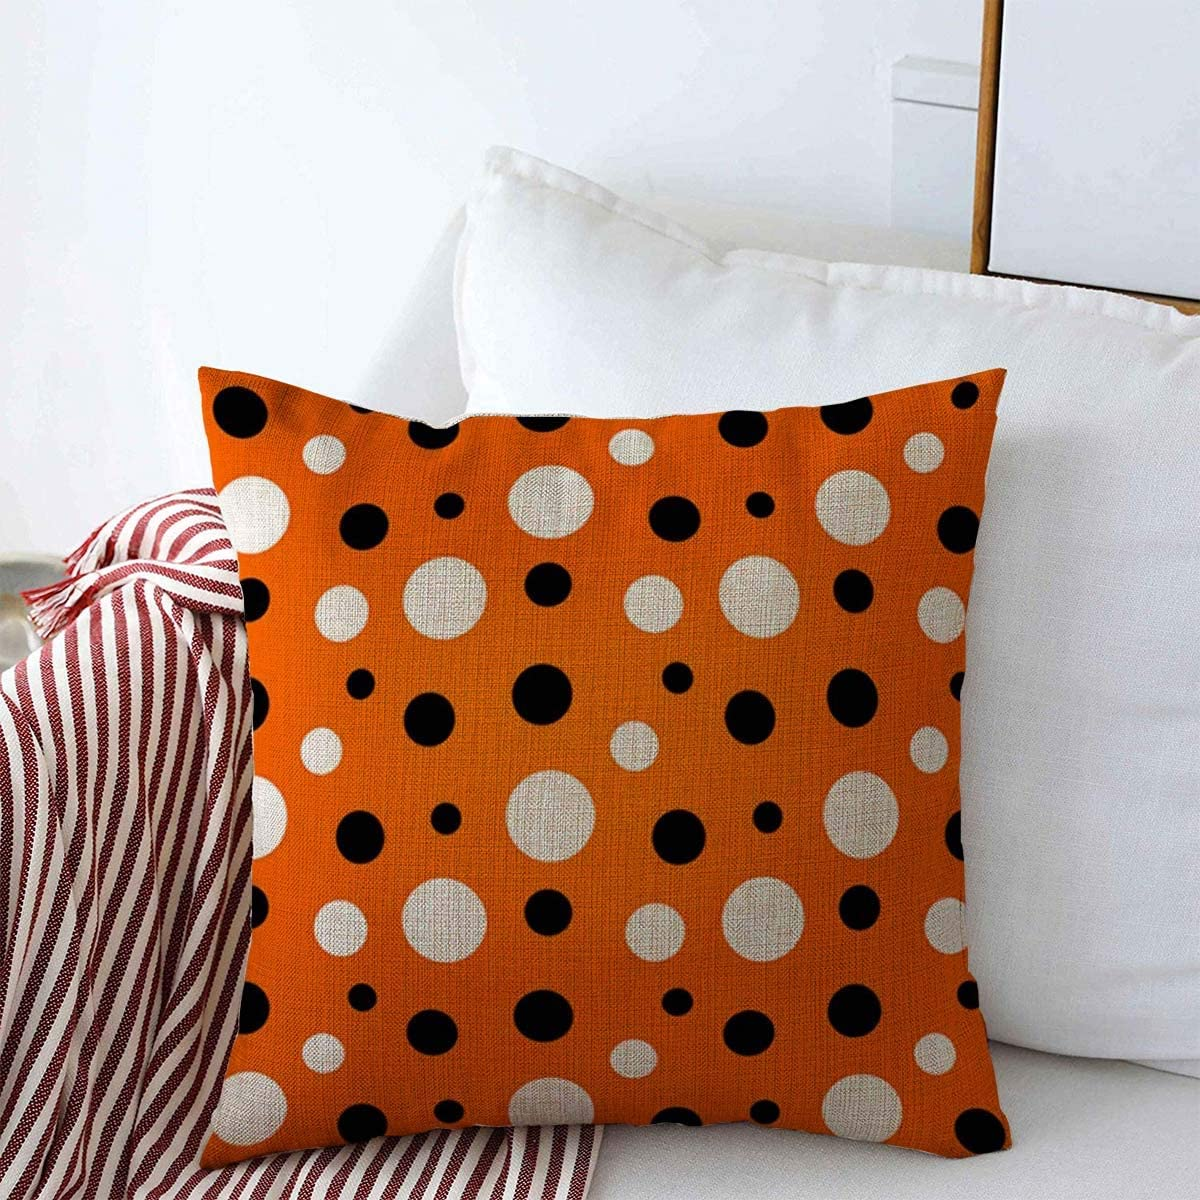 Staroapr Throw Pillow Covers Colored Abstract Orange Black White Modern Polka Dot Art Amp Pattern Children Circle Circular Classic Cushion Pillows Linen Cases For Winter Home Decor 18 X 18 Home